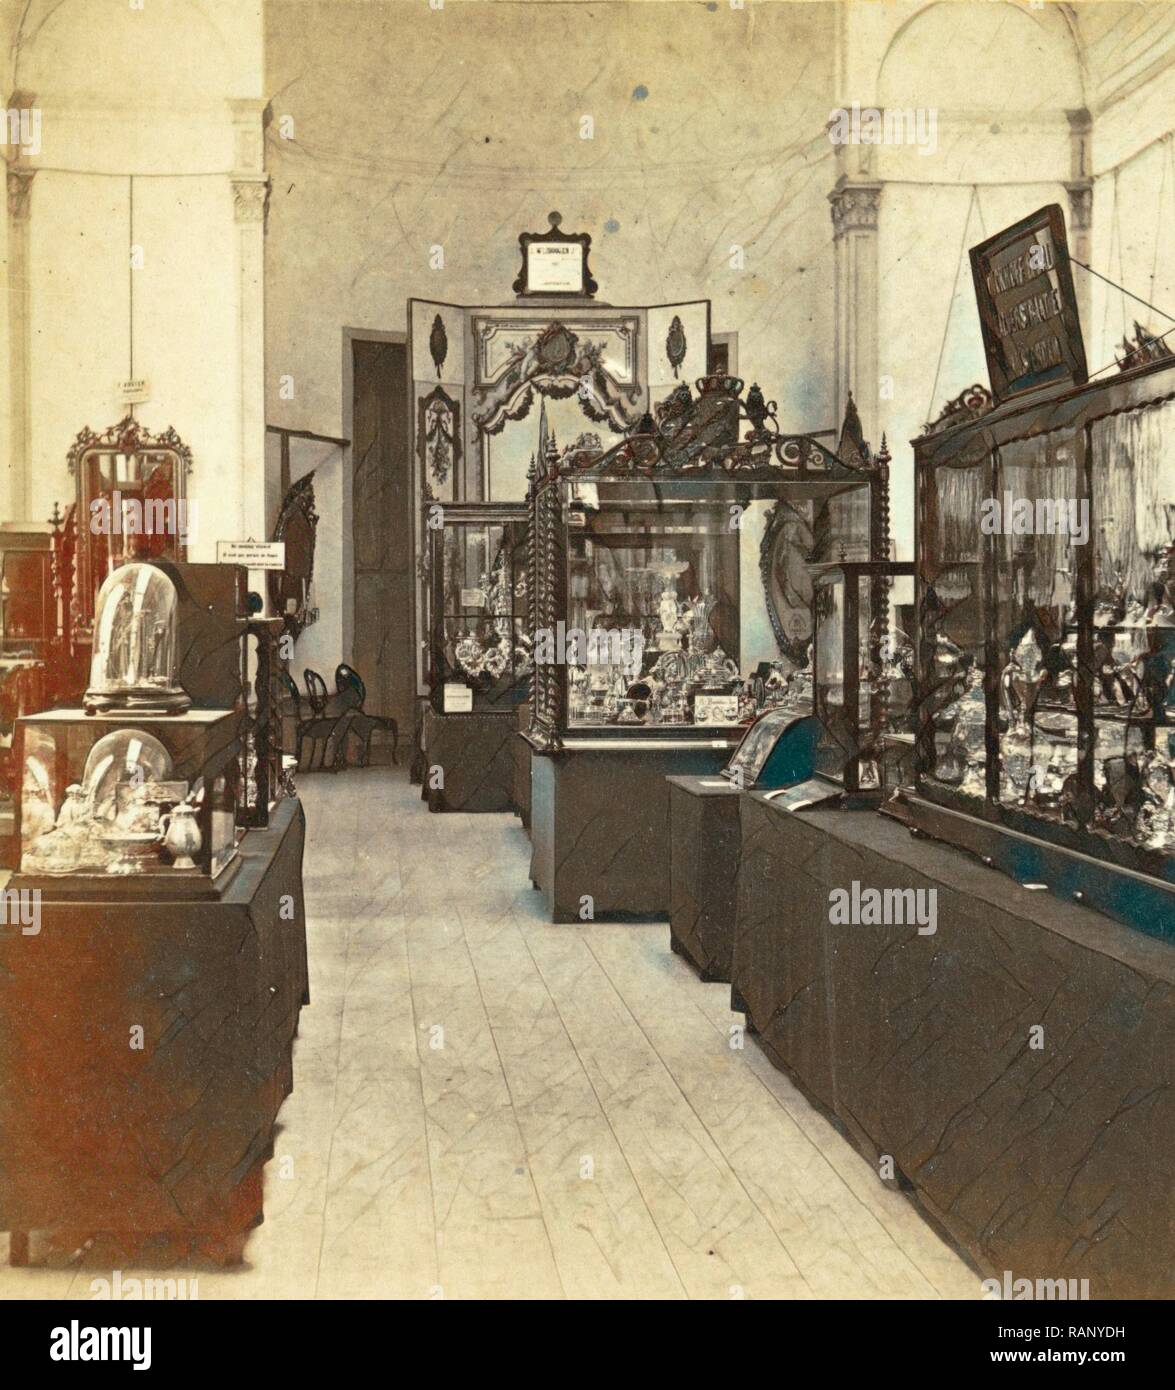 Display cabinets with objects in the exhibition of National Industry and Art in the Palace of Industry, Amsterdam reimagined Stock Photo